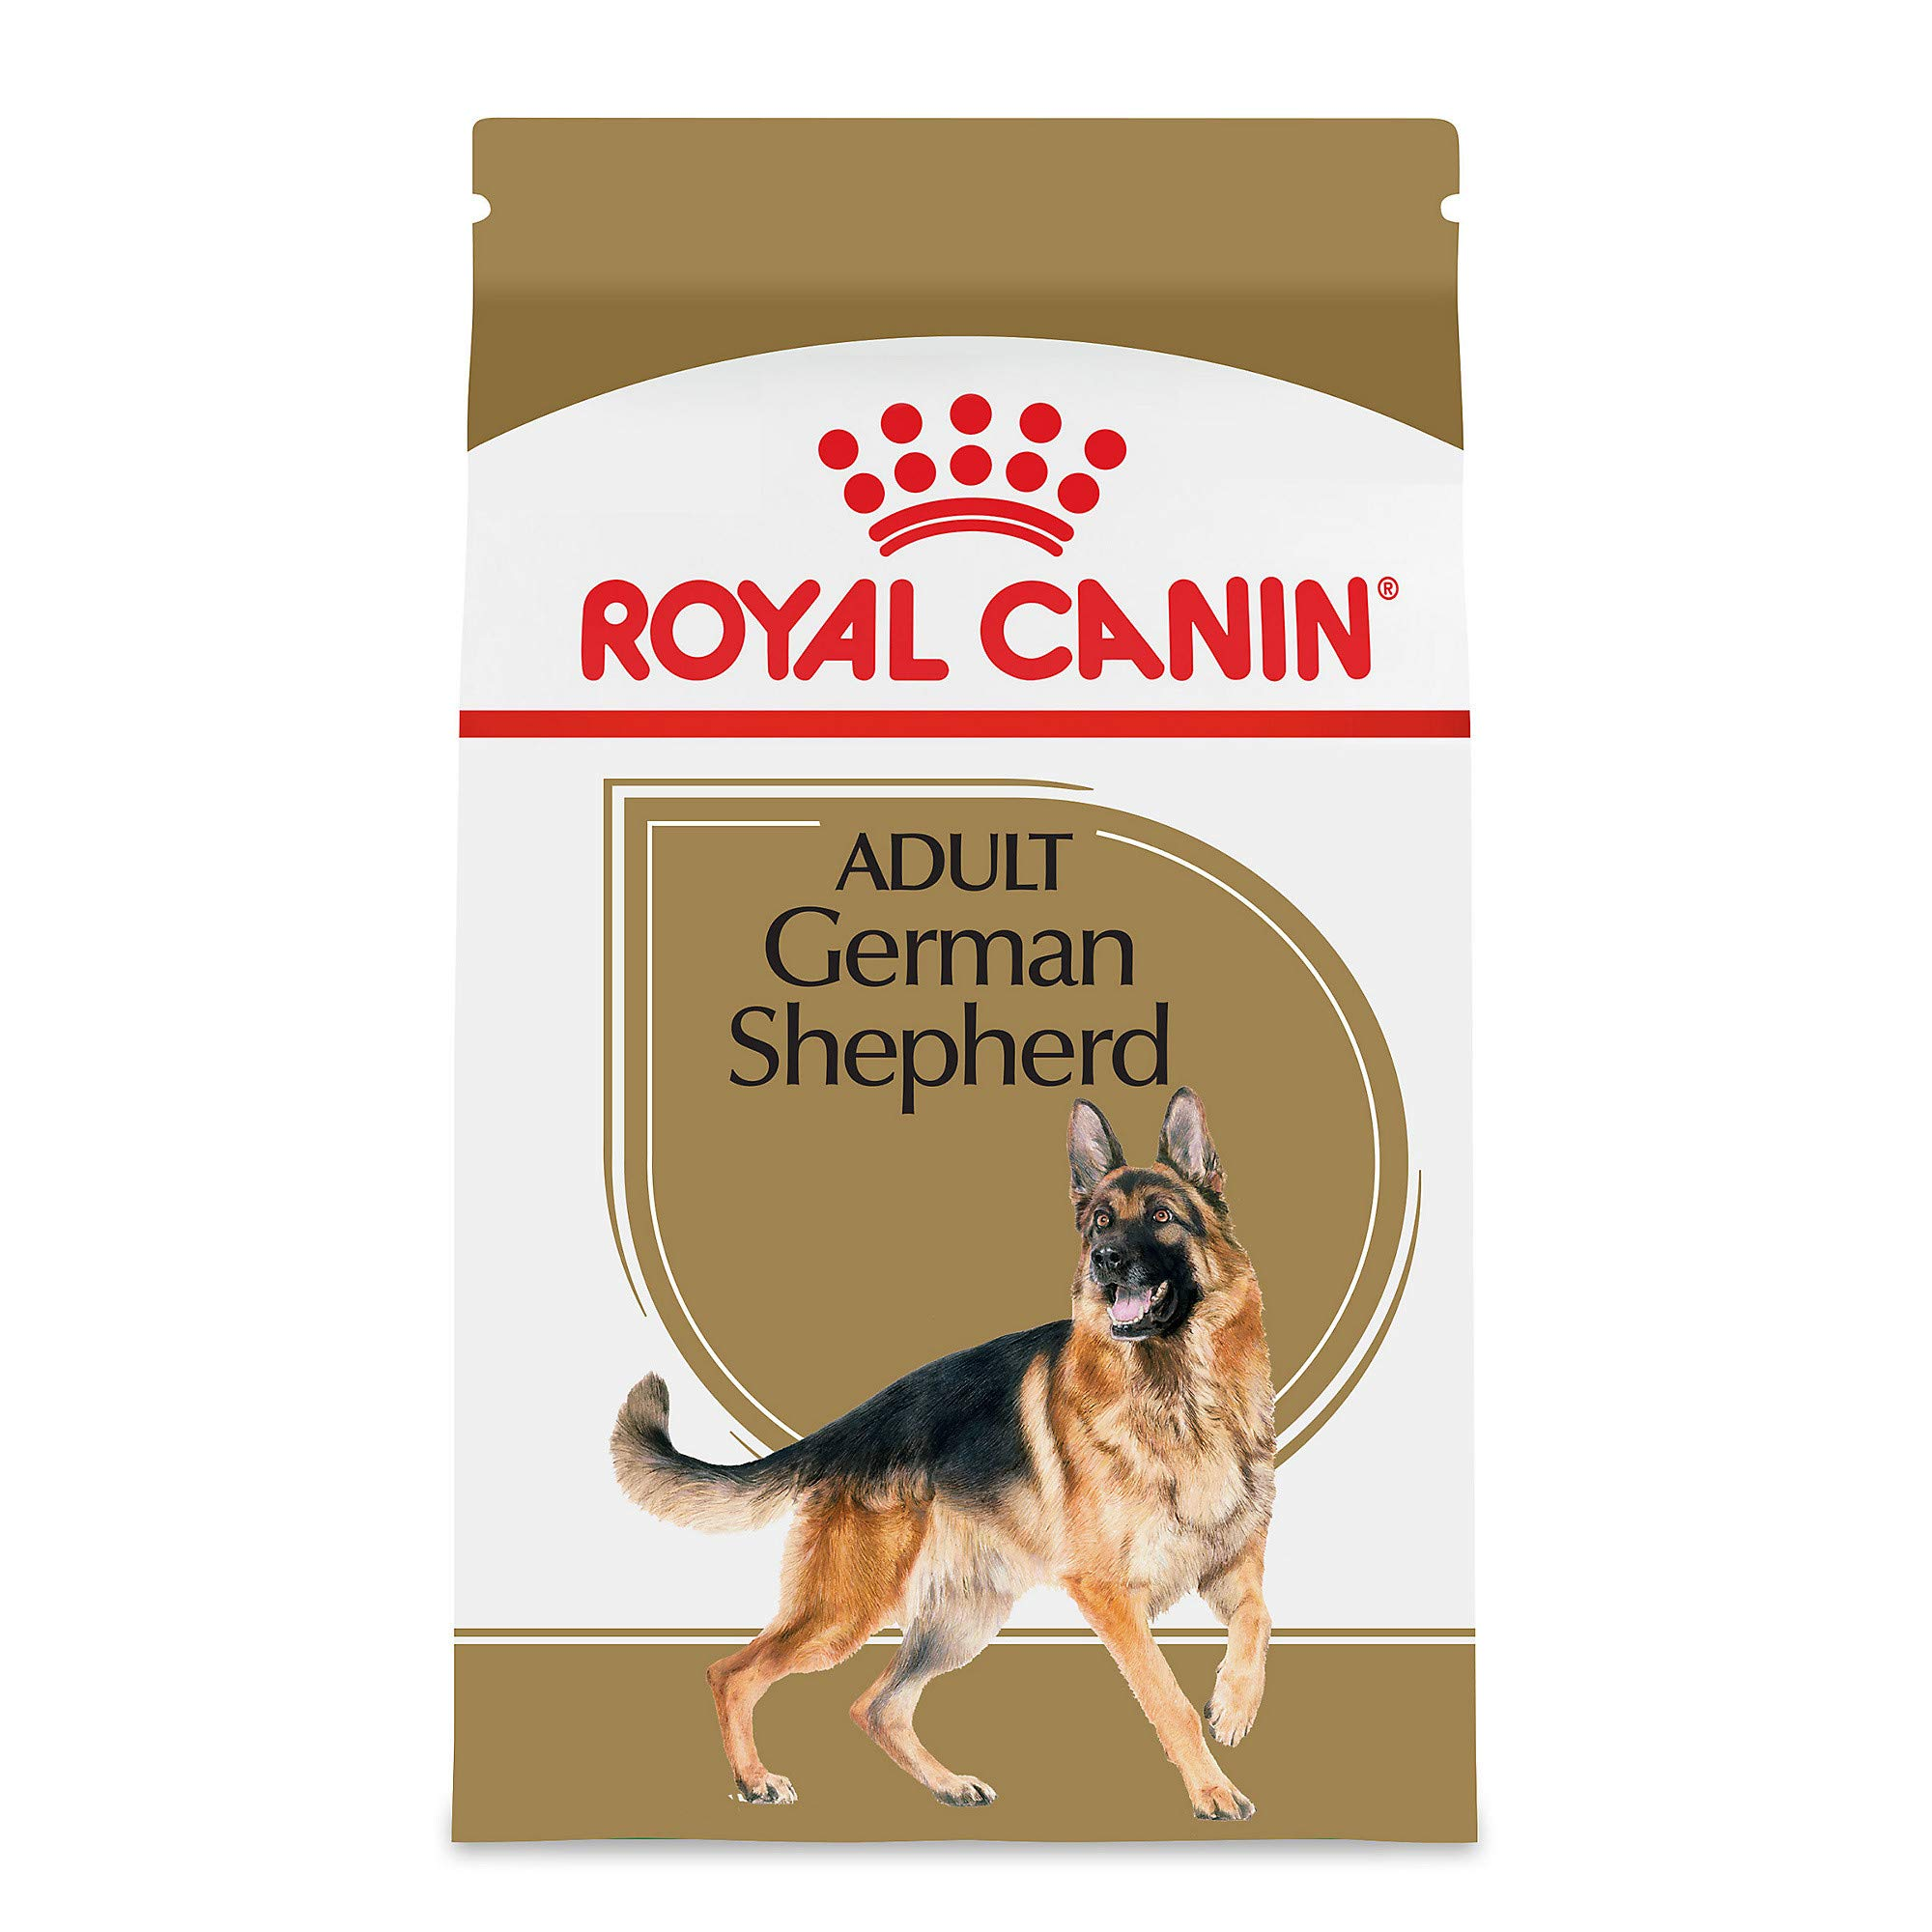 Royal Canin German Shepherd Adult Breed Specific Dry Dog Food, 30 lb. bag by Royal Canin